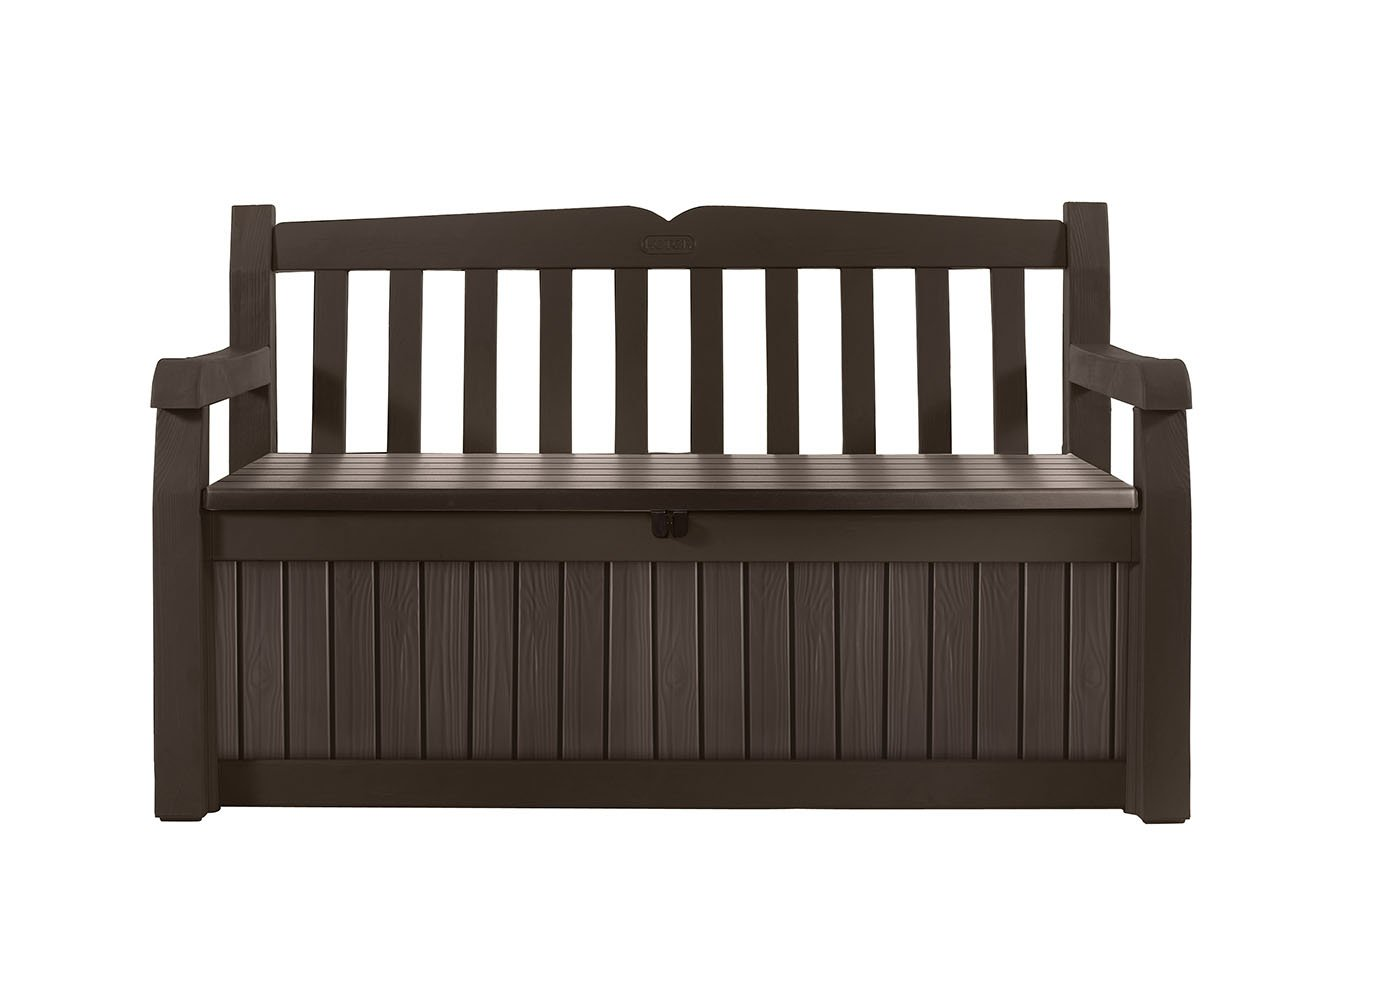 Keter Eden 70 Gallon All Weather Outdoor Patio Storage Garden Bench Deck Box, Brown/Brown by Keter